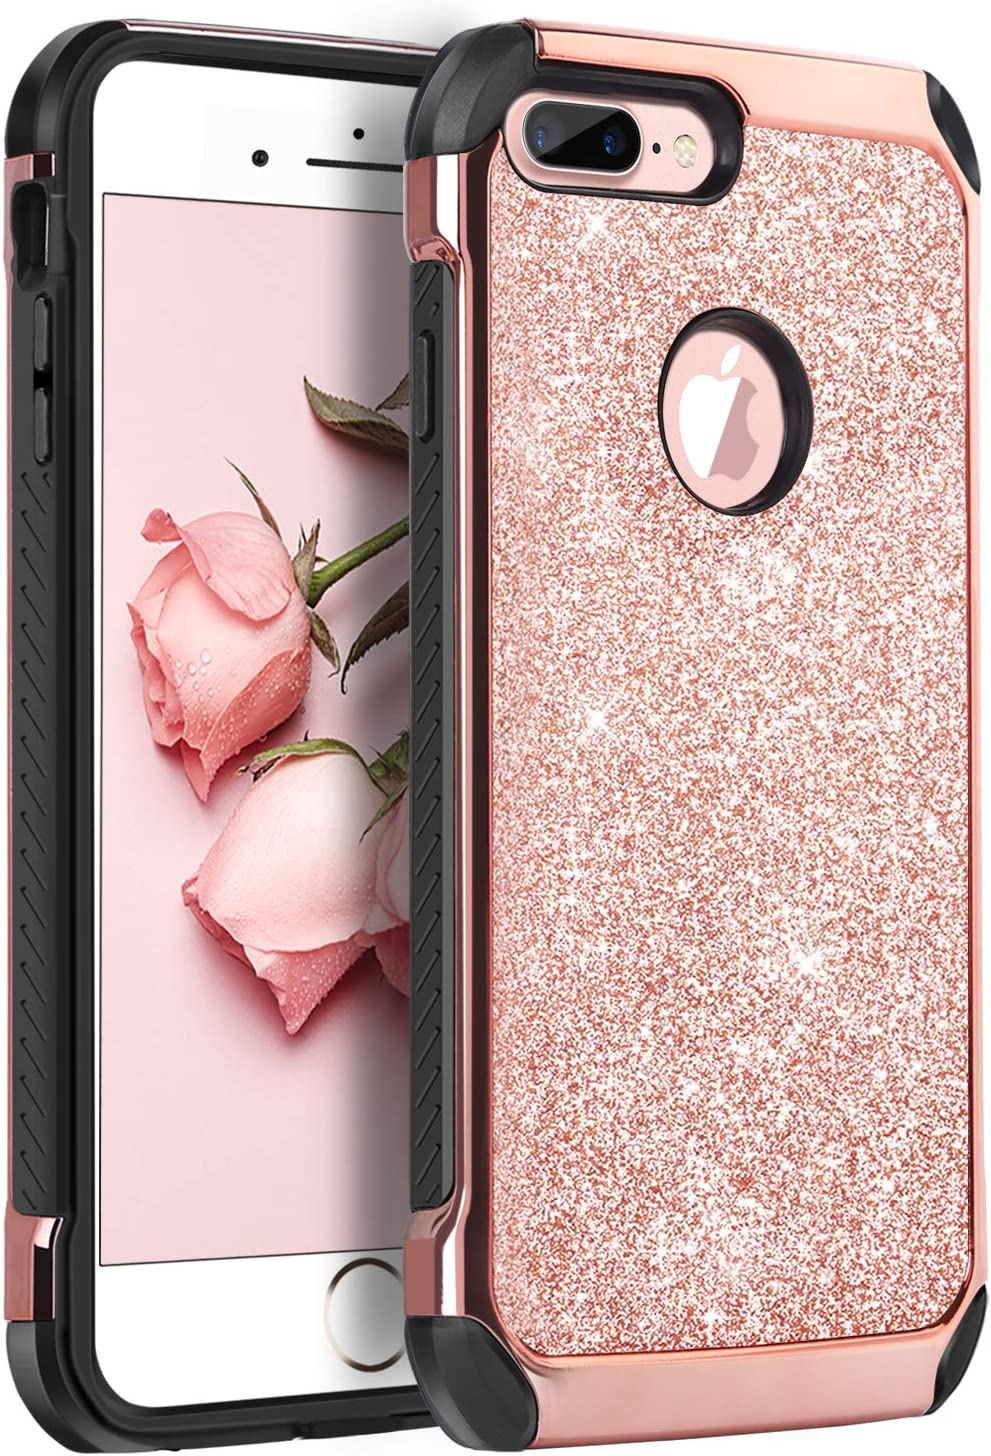 BENTOBEN iPhone 7 Plus Case, Glitter Sparkly Shockproof Slim Laminated with Luxury Shiny Faux Leather Protective Case for iPhone 7 Plus (5.5 inch), Rose Gold